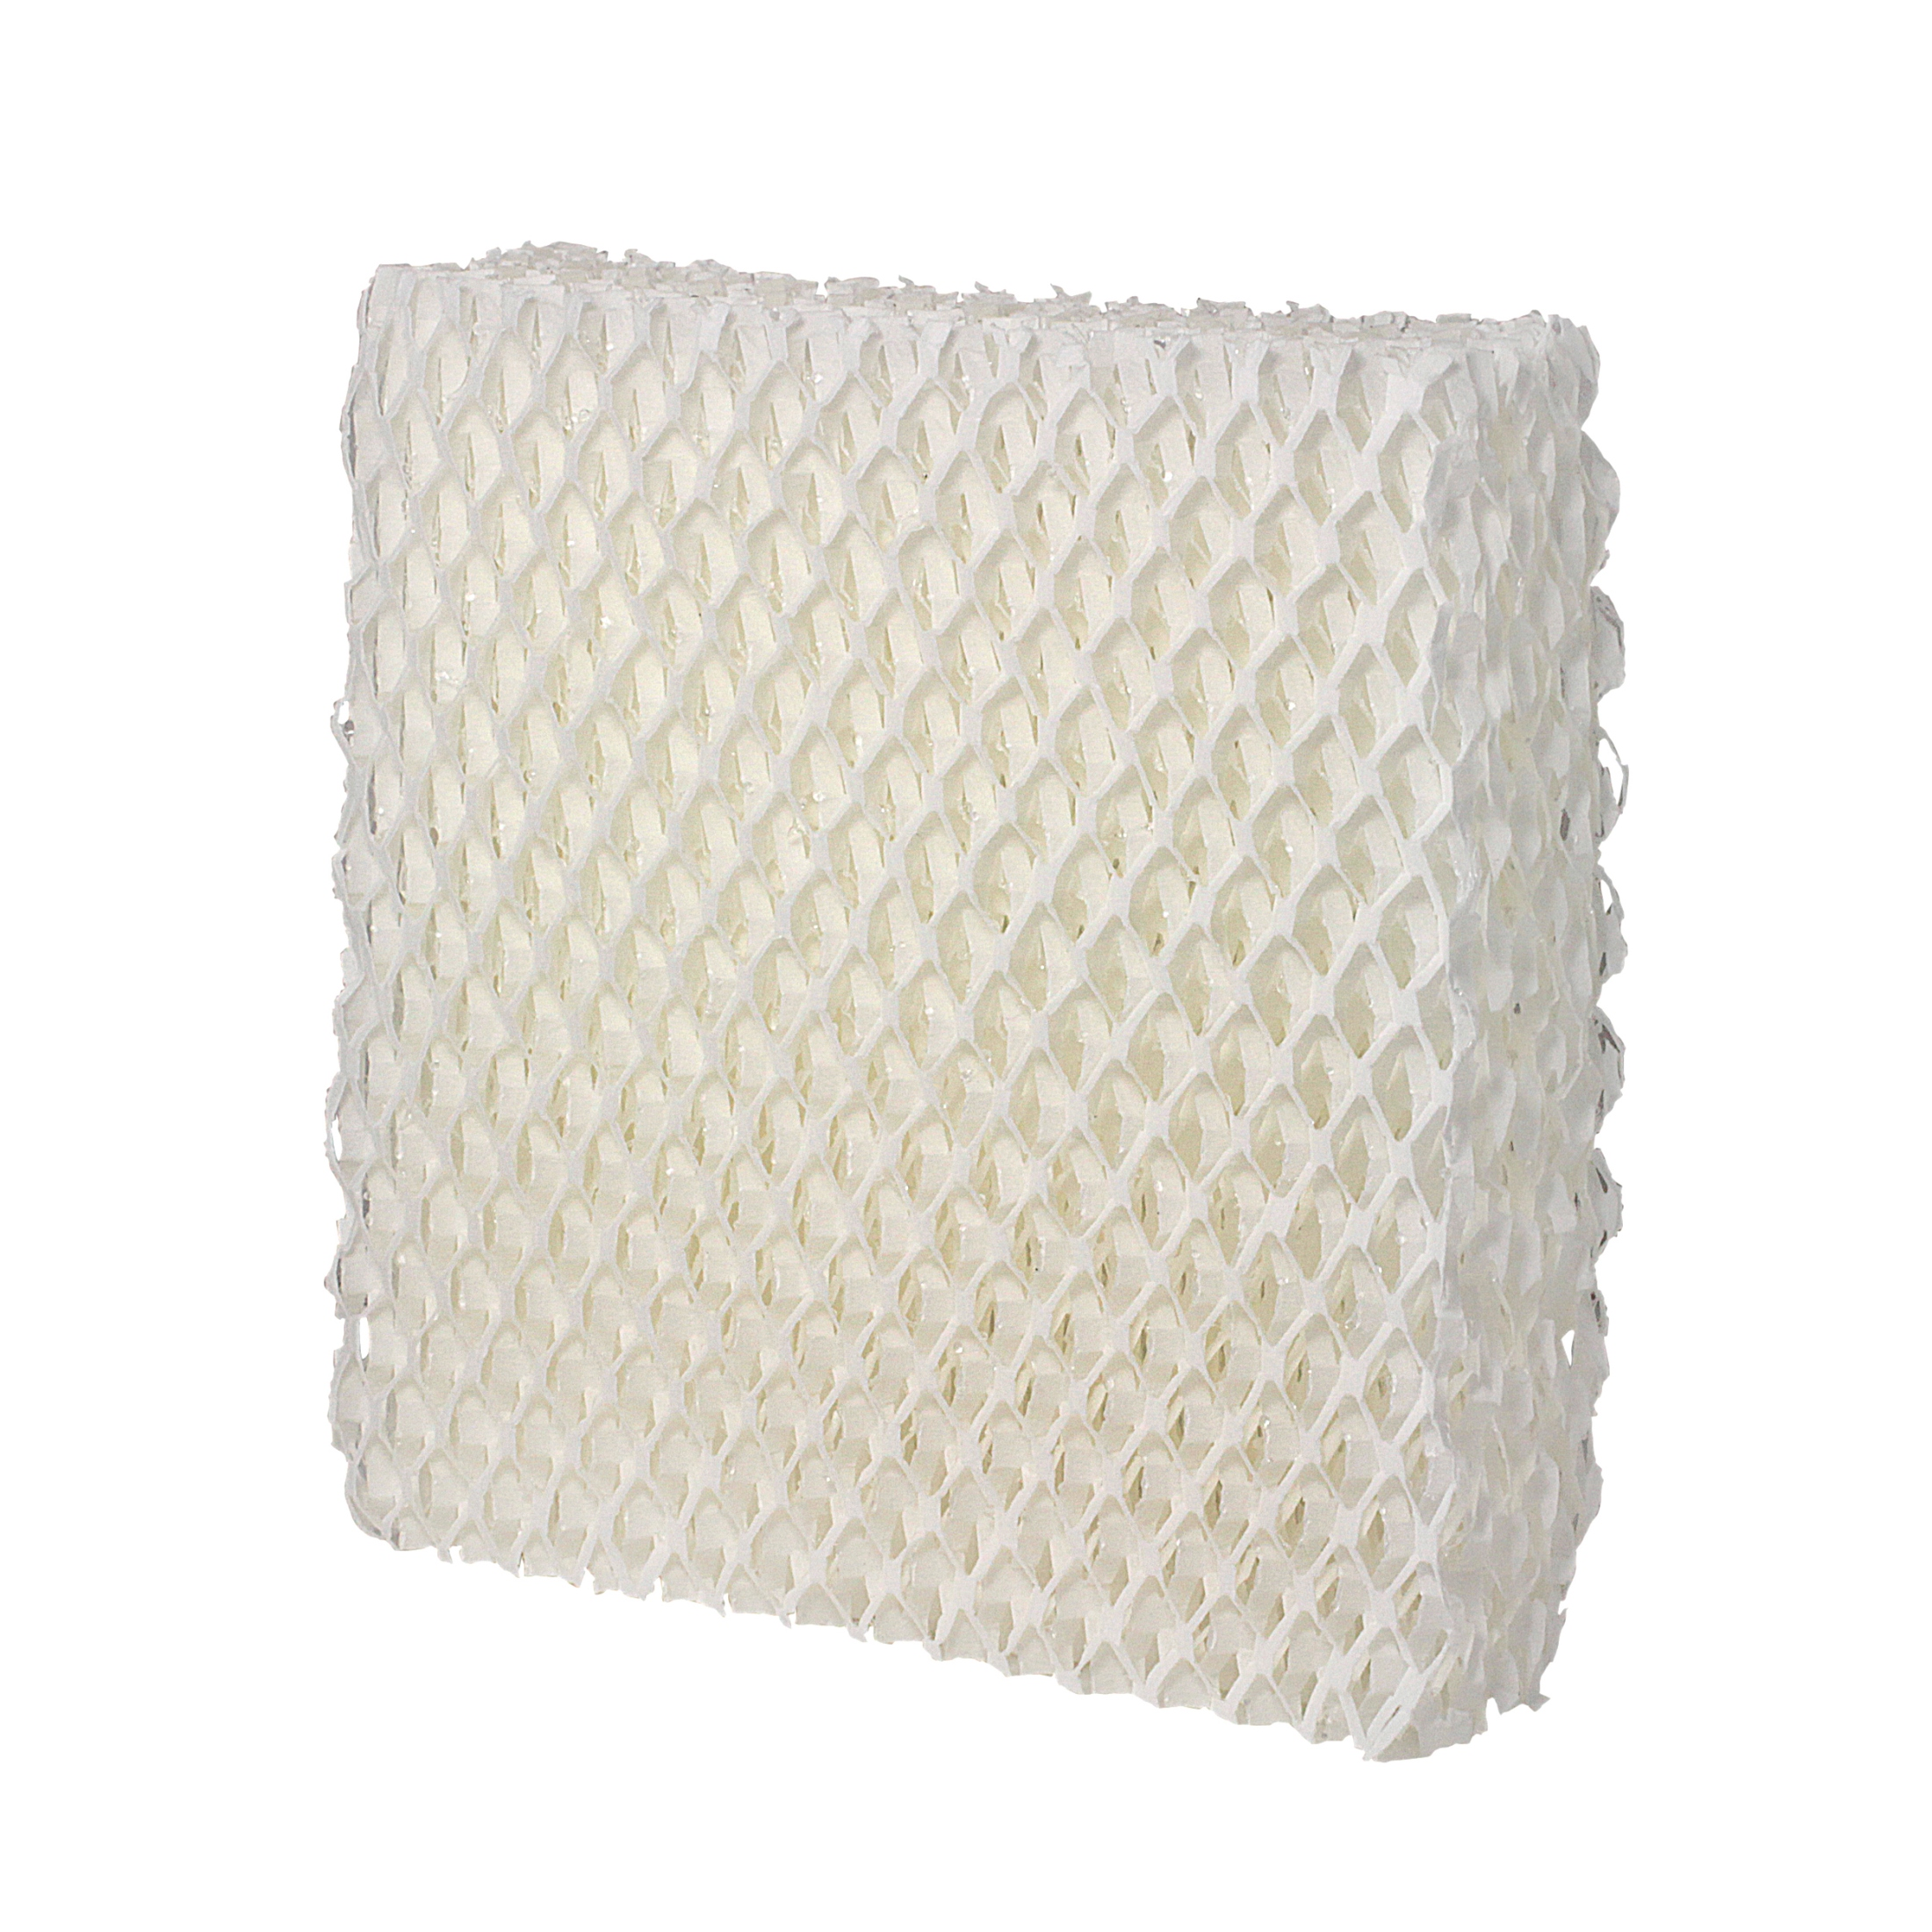 AC814 & Honeywell HAC 514 Humidifier Wick Replacement Filter Filter #7A6F51